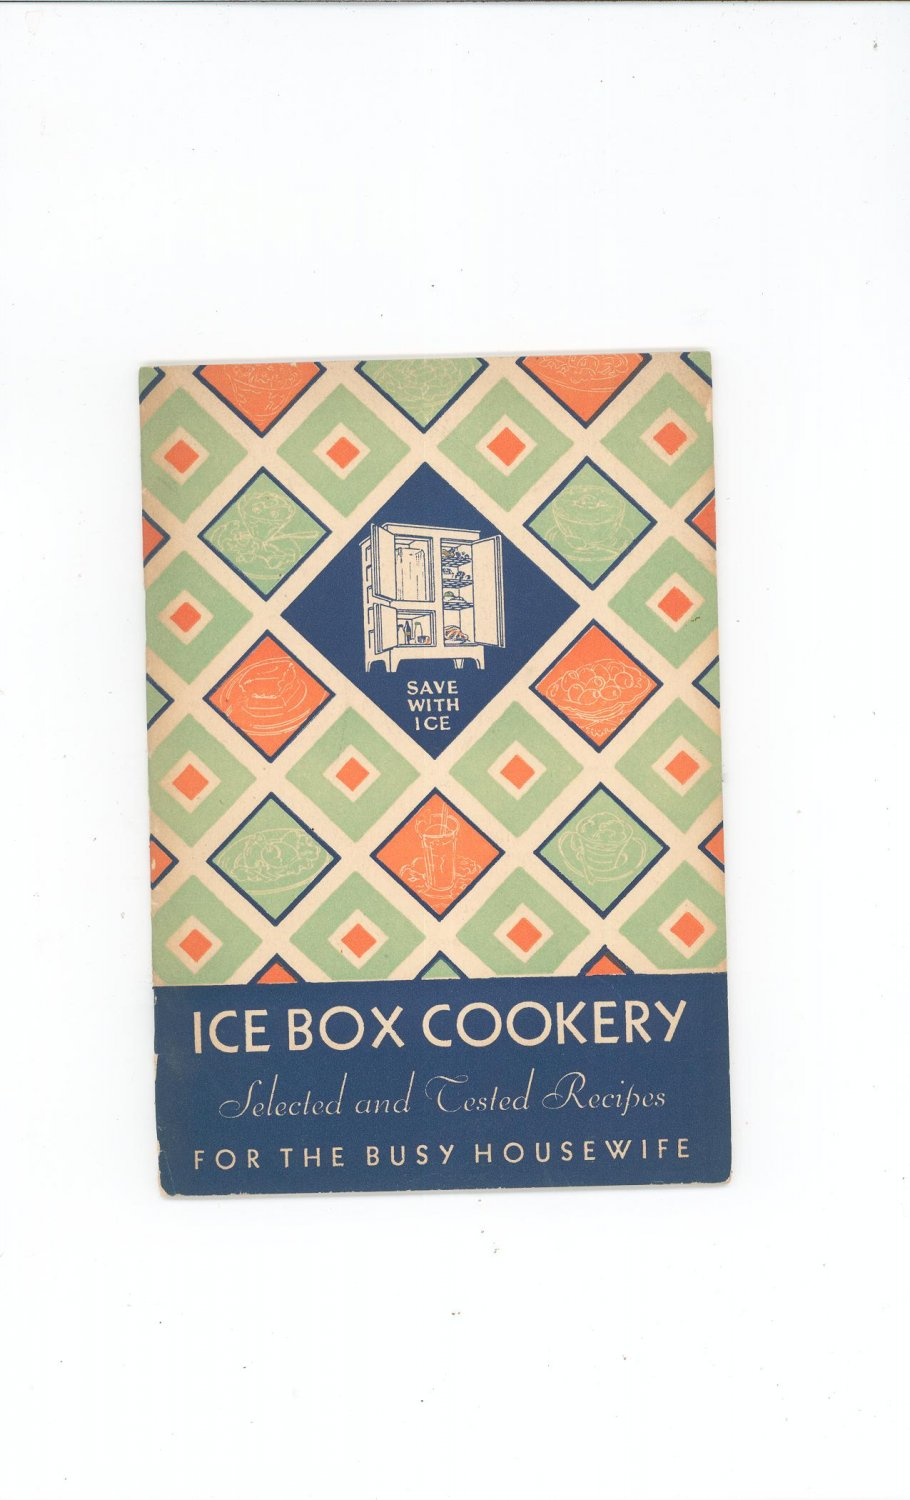 Vintage Ice Box Cookery Cookbook For The Busy Housewife 1931